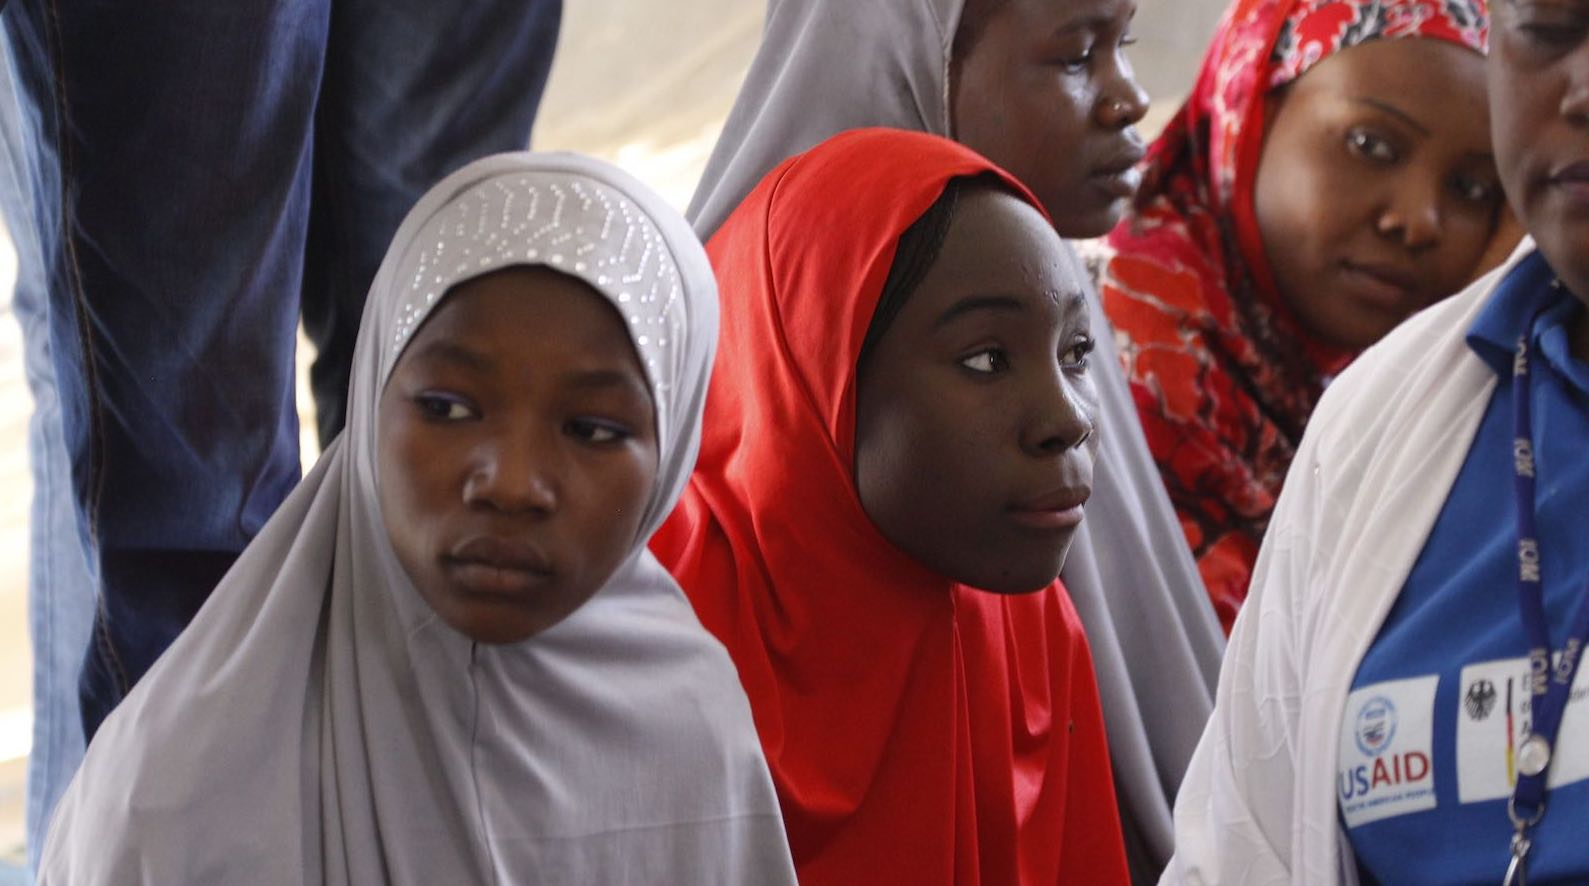 Displaced youth in Nigeria during a 2014 visit by members of the UN Security Council (Photo: Lorey Campese/UK Mission to the UN)